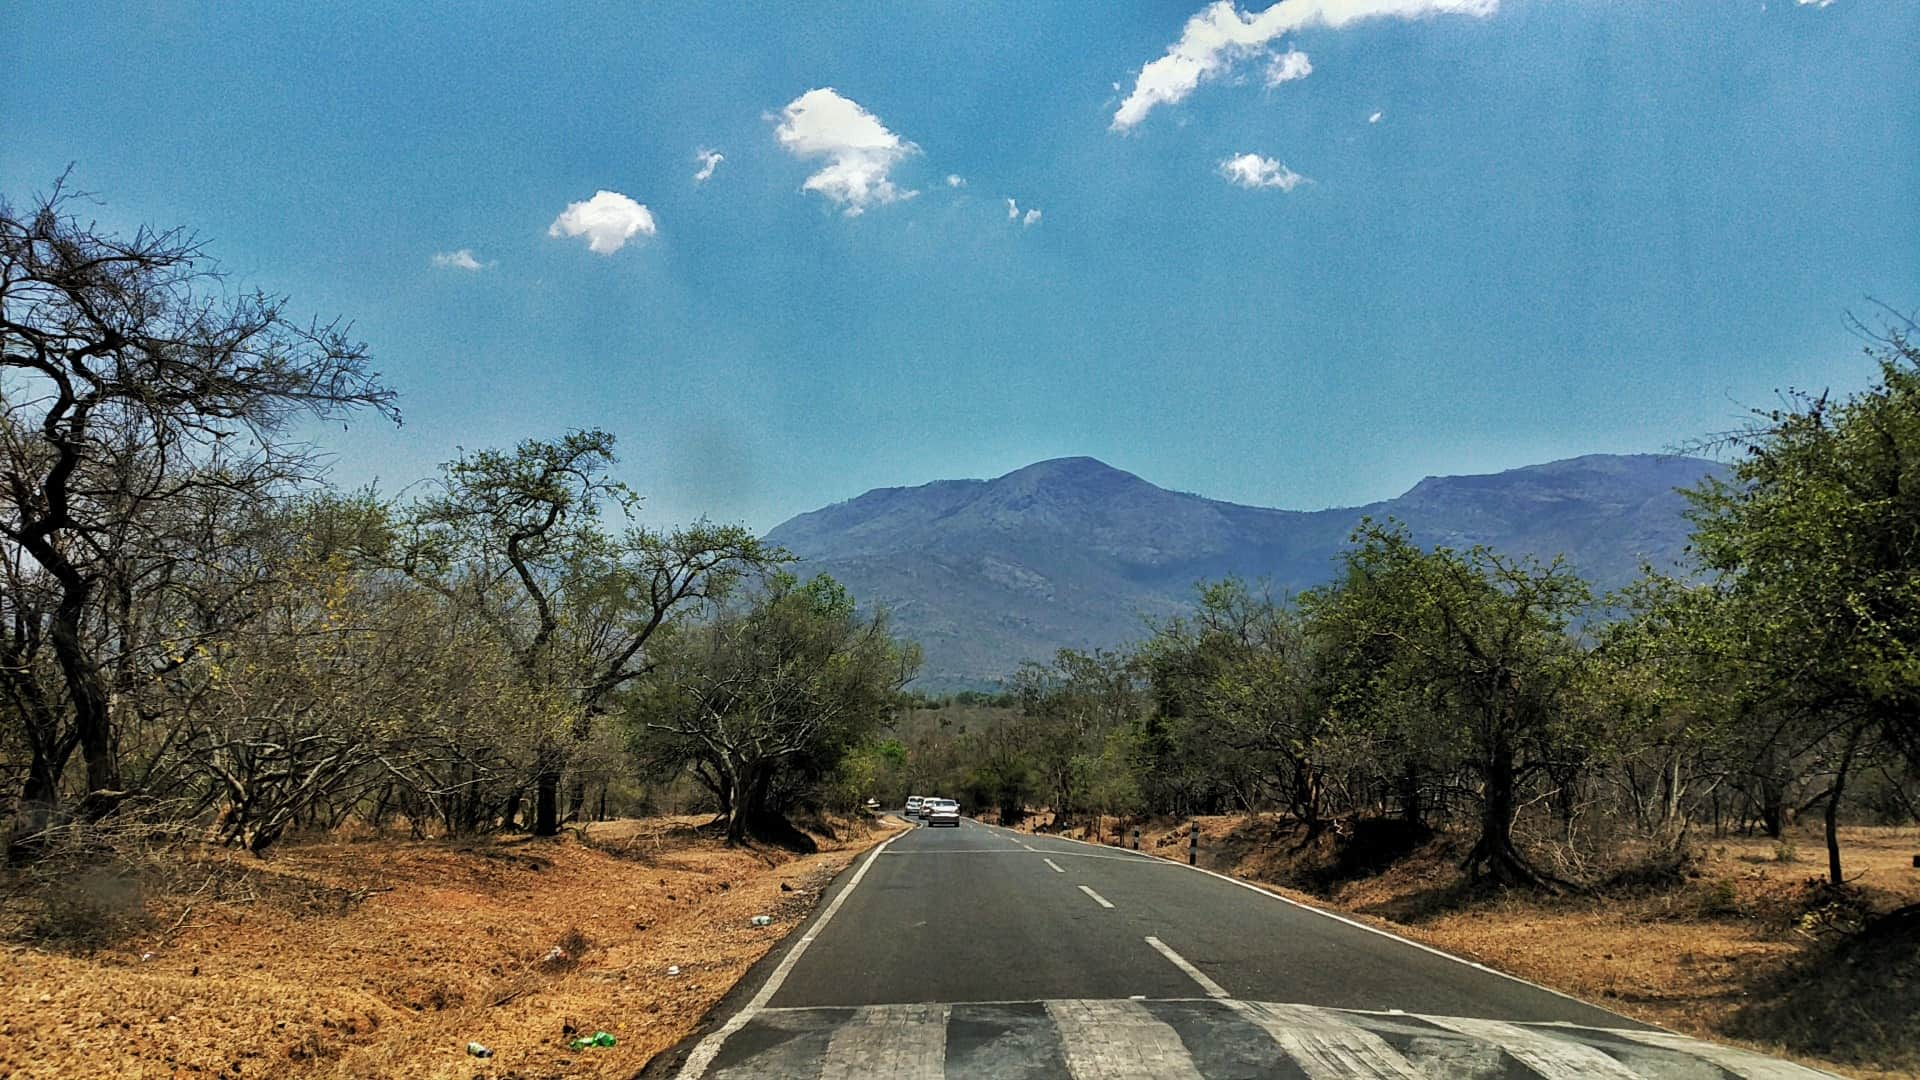 on the road to Bandipur Tiger Reserve